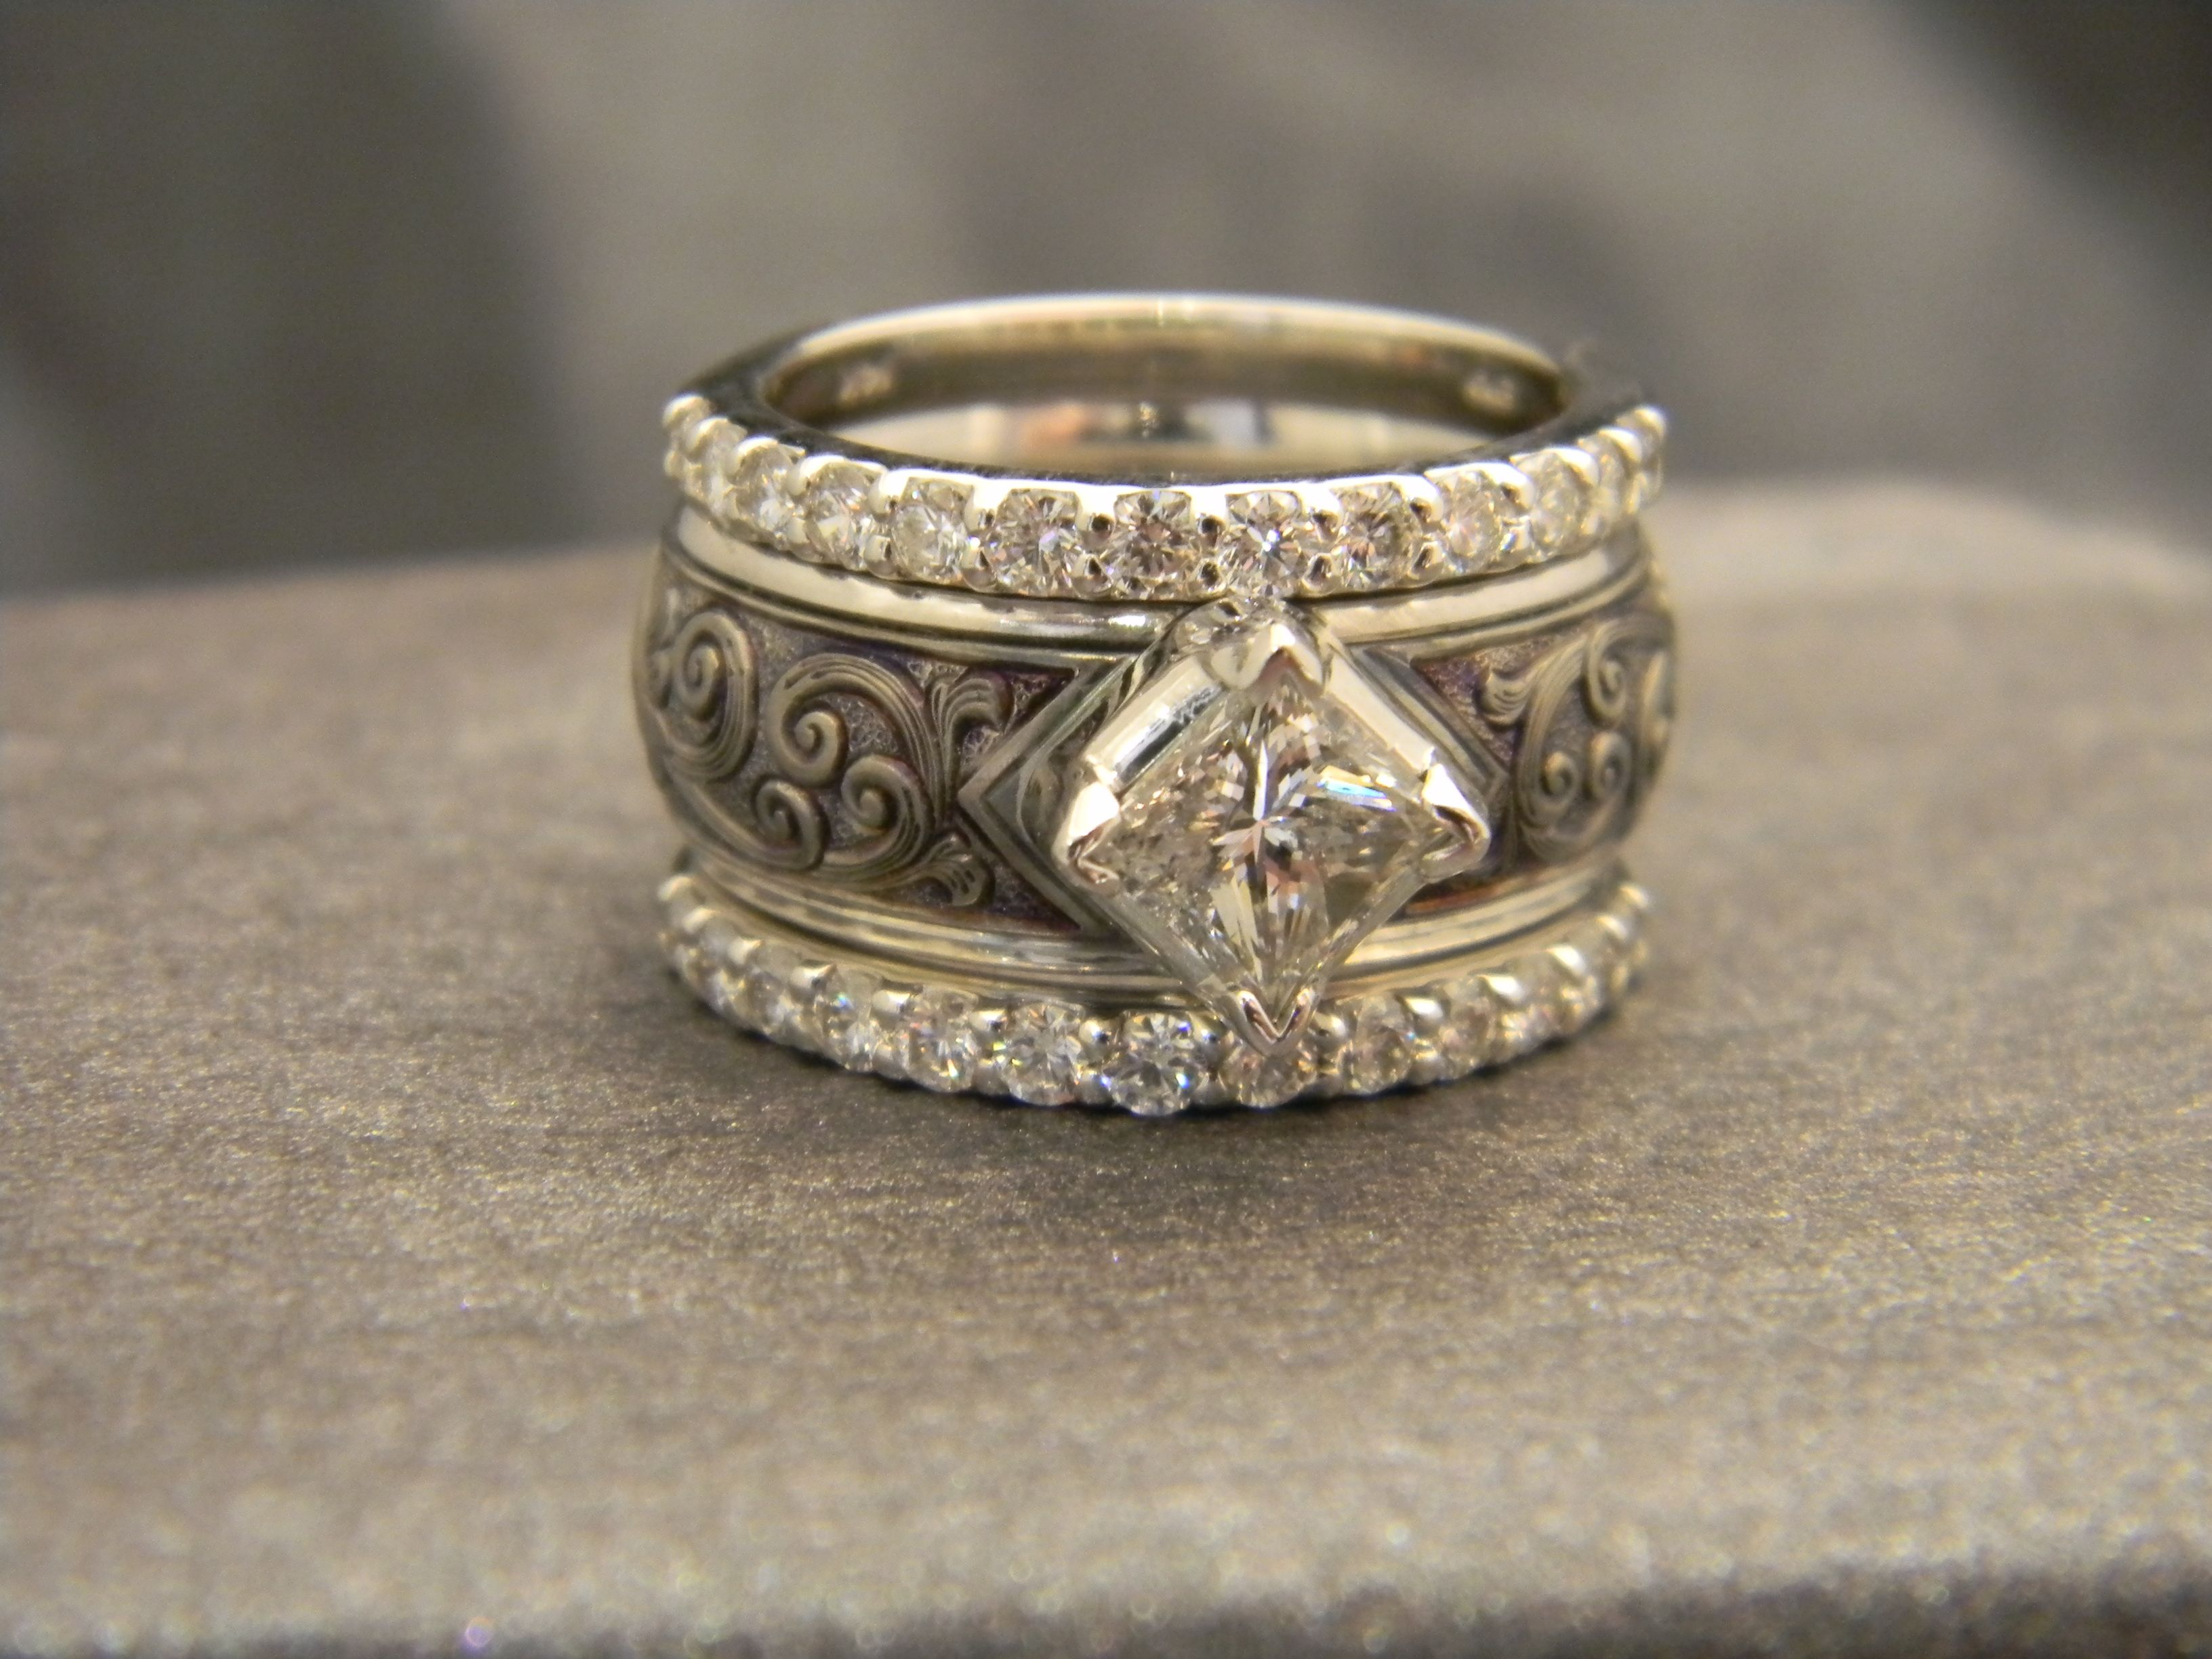 8mm Titanium ring with a 14K White Gold Wrap Deep Relief